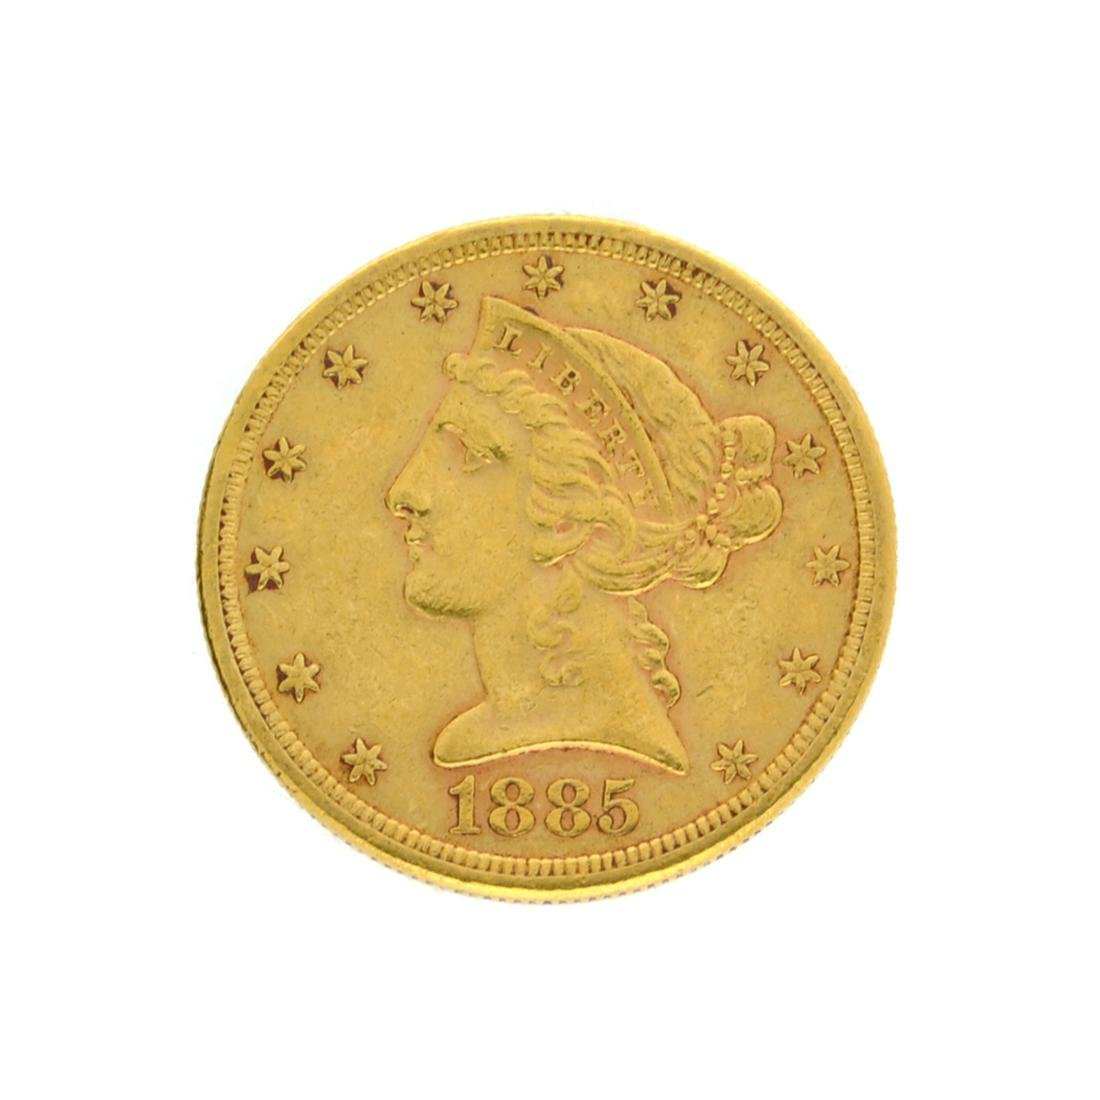 Extremely Rare 1885-S $5 U.S. Liberty Head Gold Coin